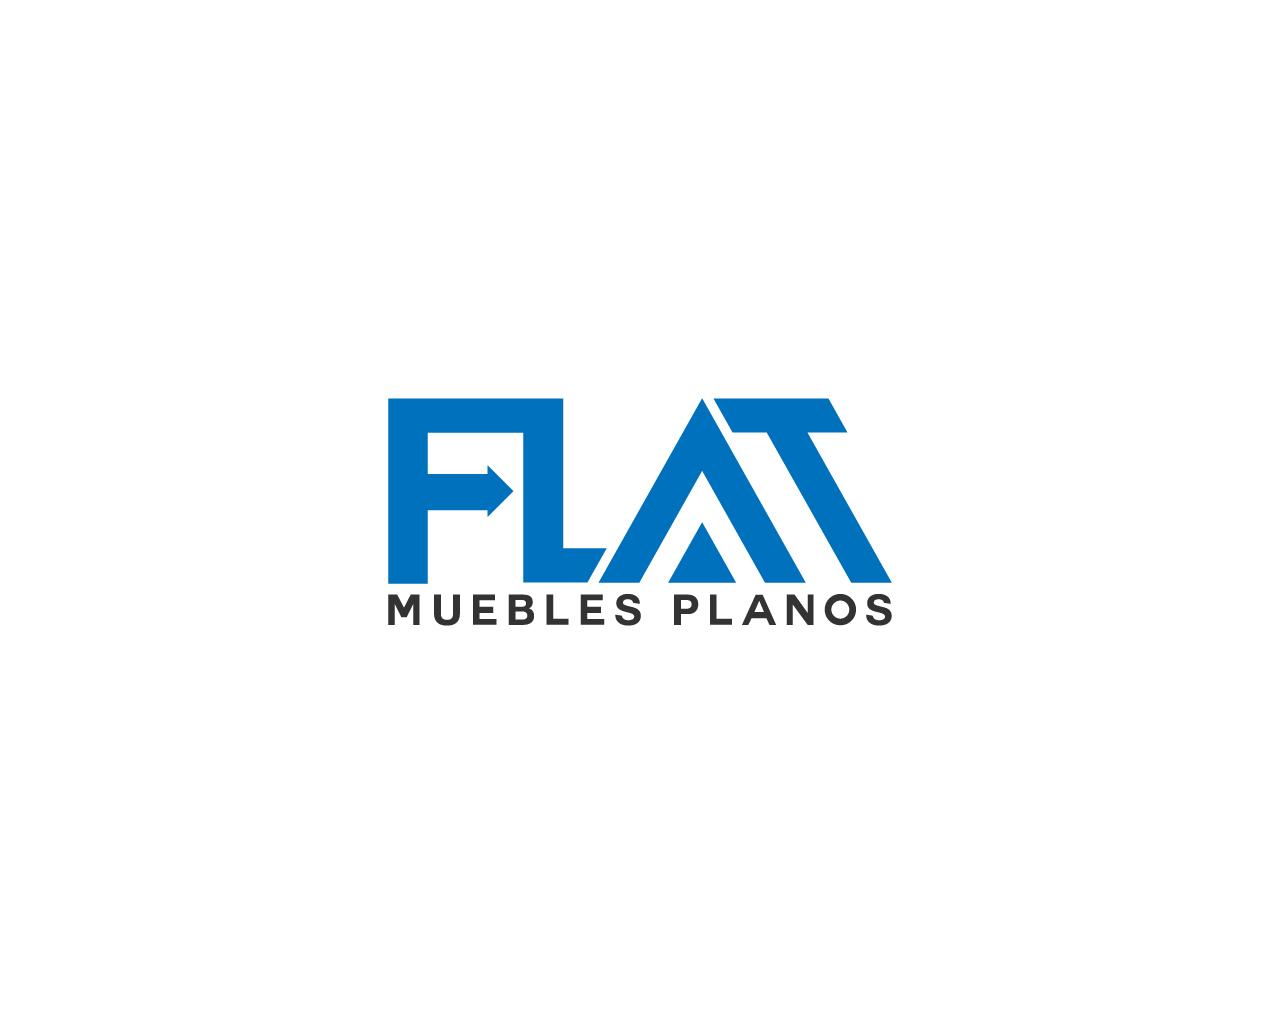 Muebles Bd Logo Design For Flat Muebles Planos By Designnewone Design 19618180